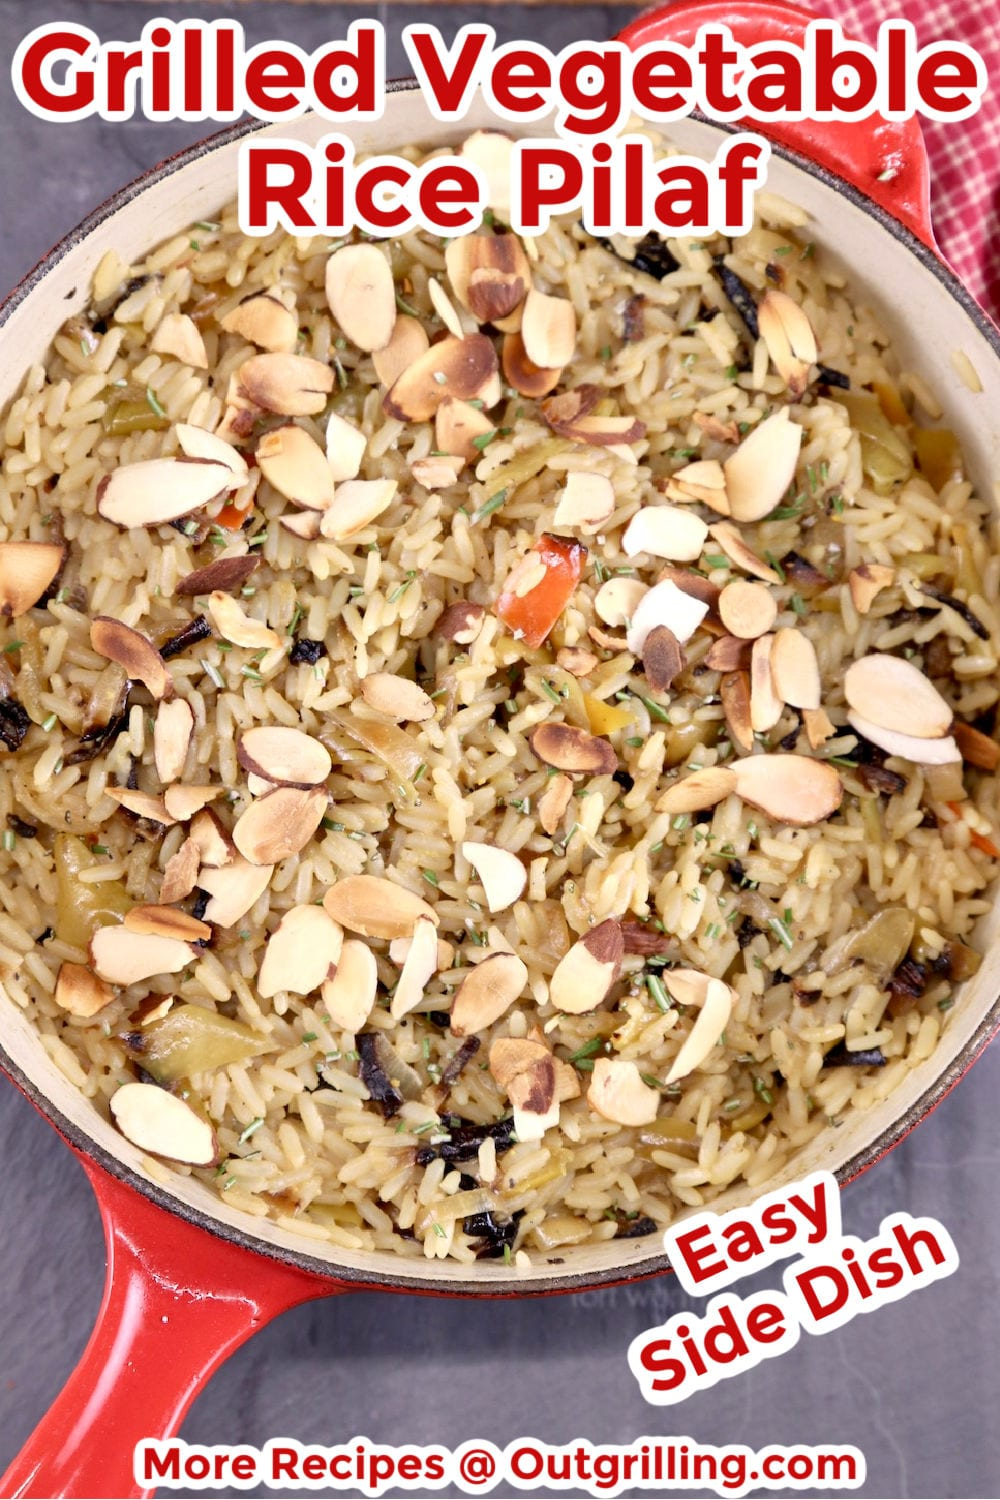 Pan of rice pilaf with toasted almonds - text overlay